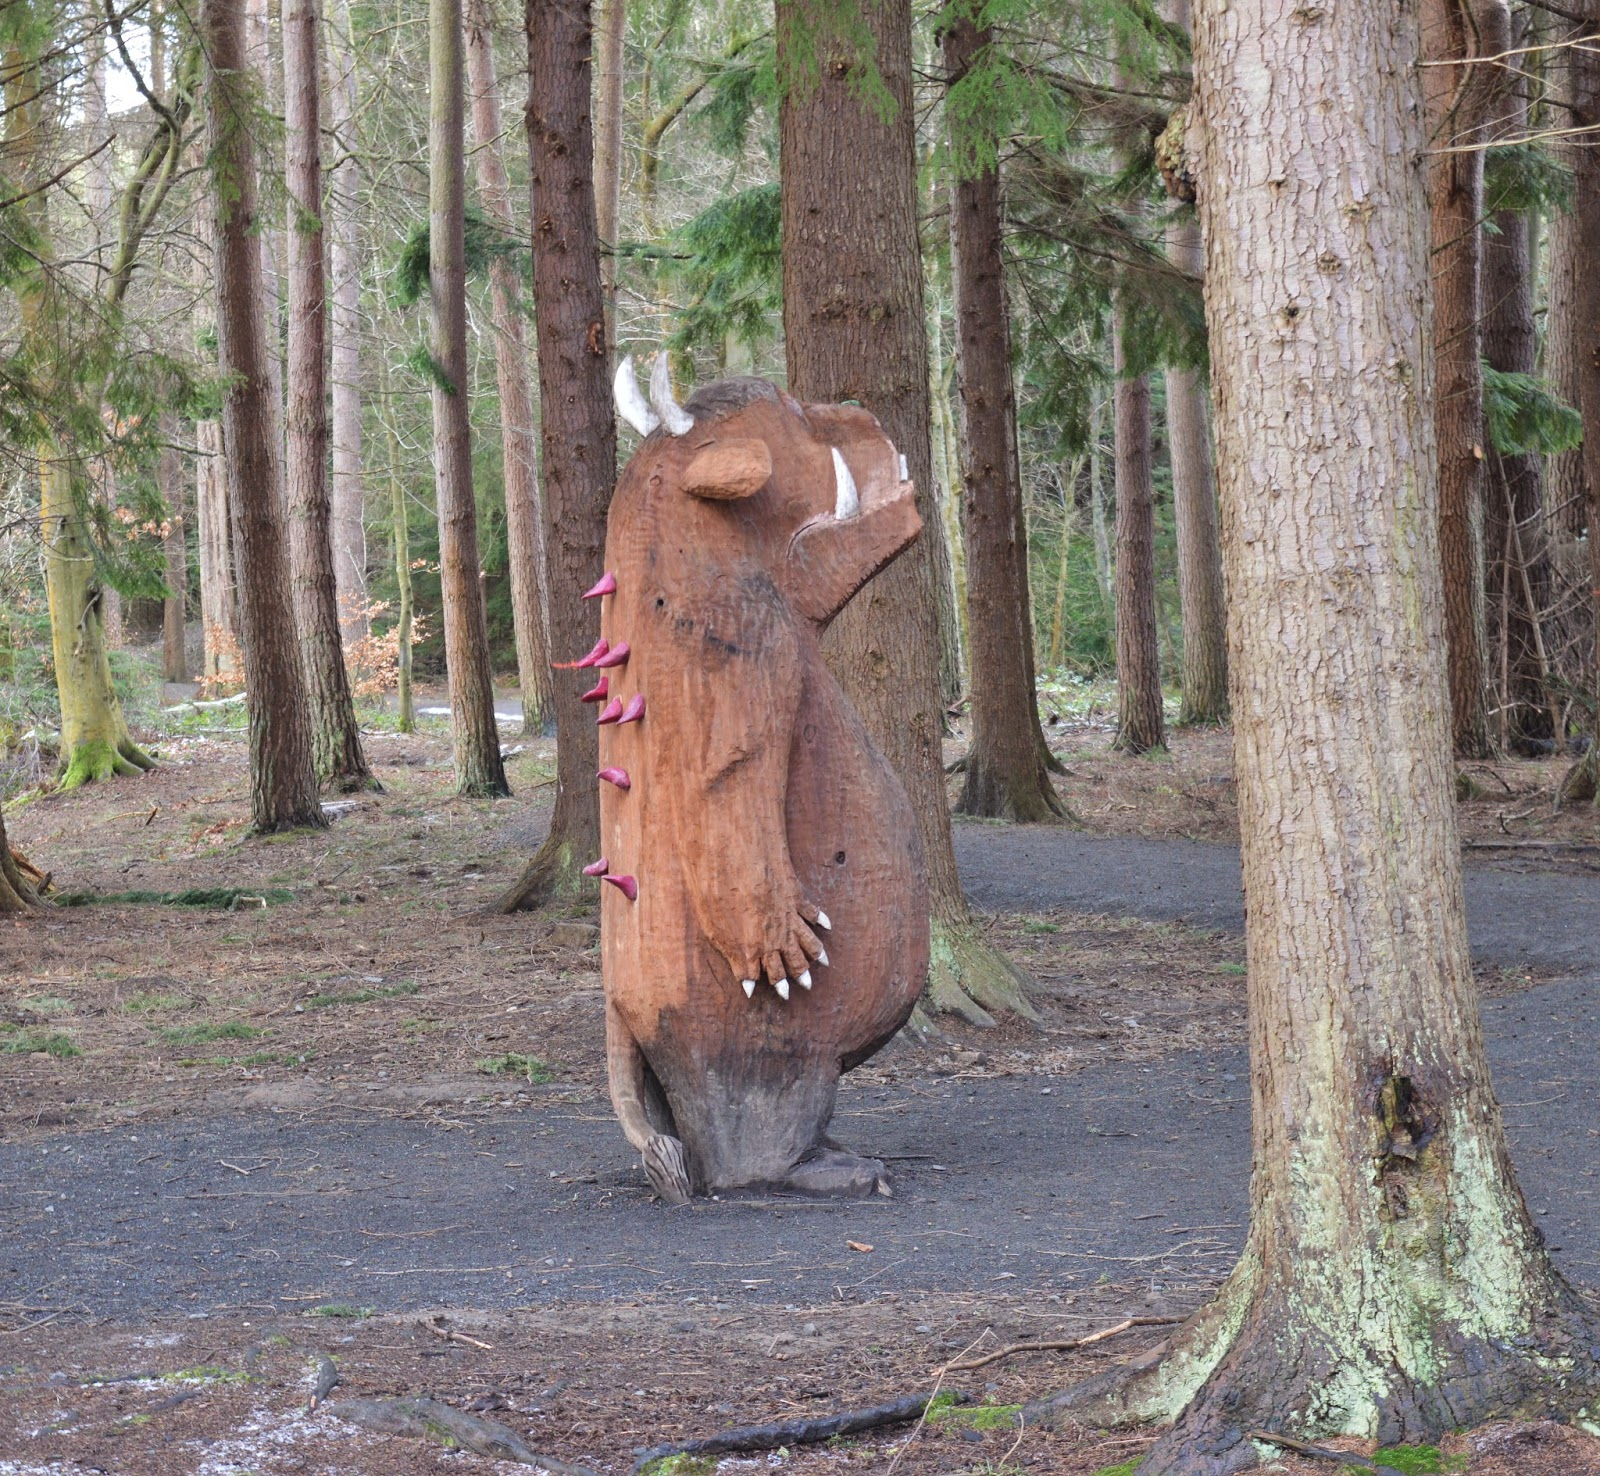 11 Woodland Walks to try in North East England this Autumn - gruffalo child